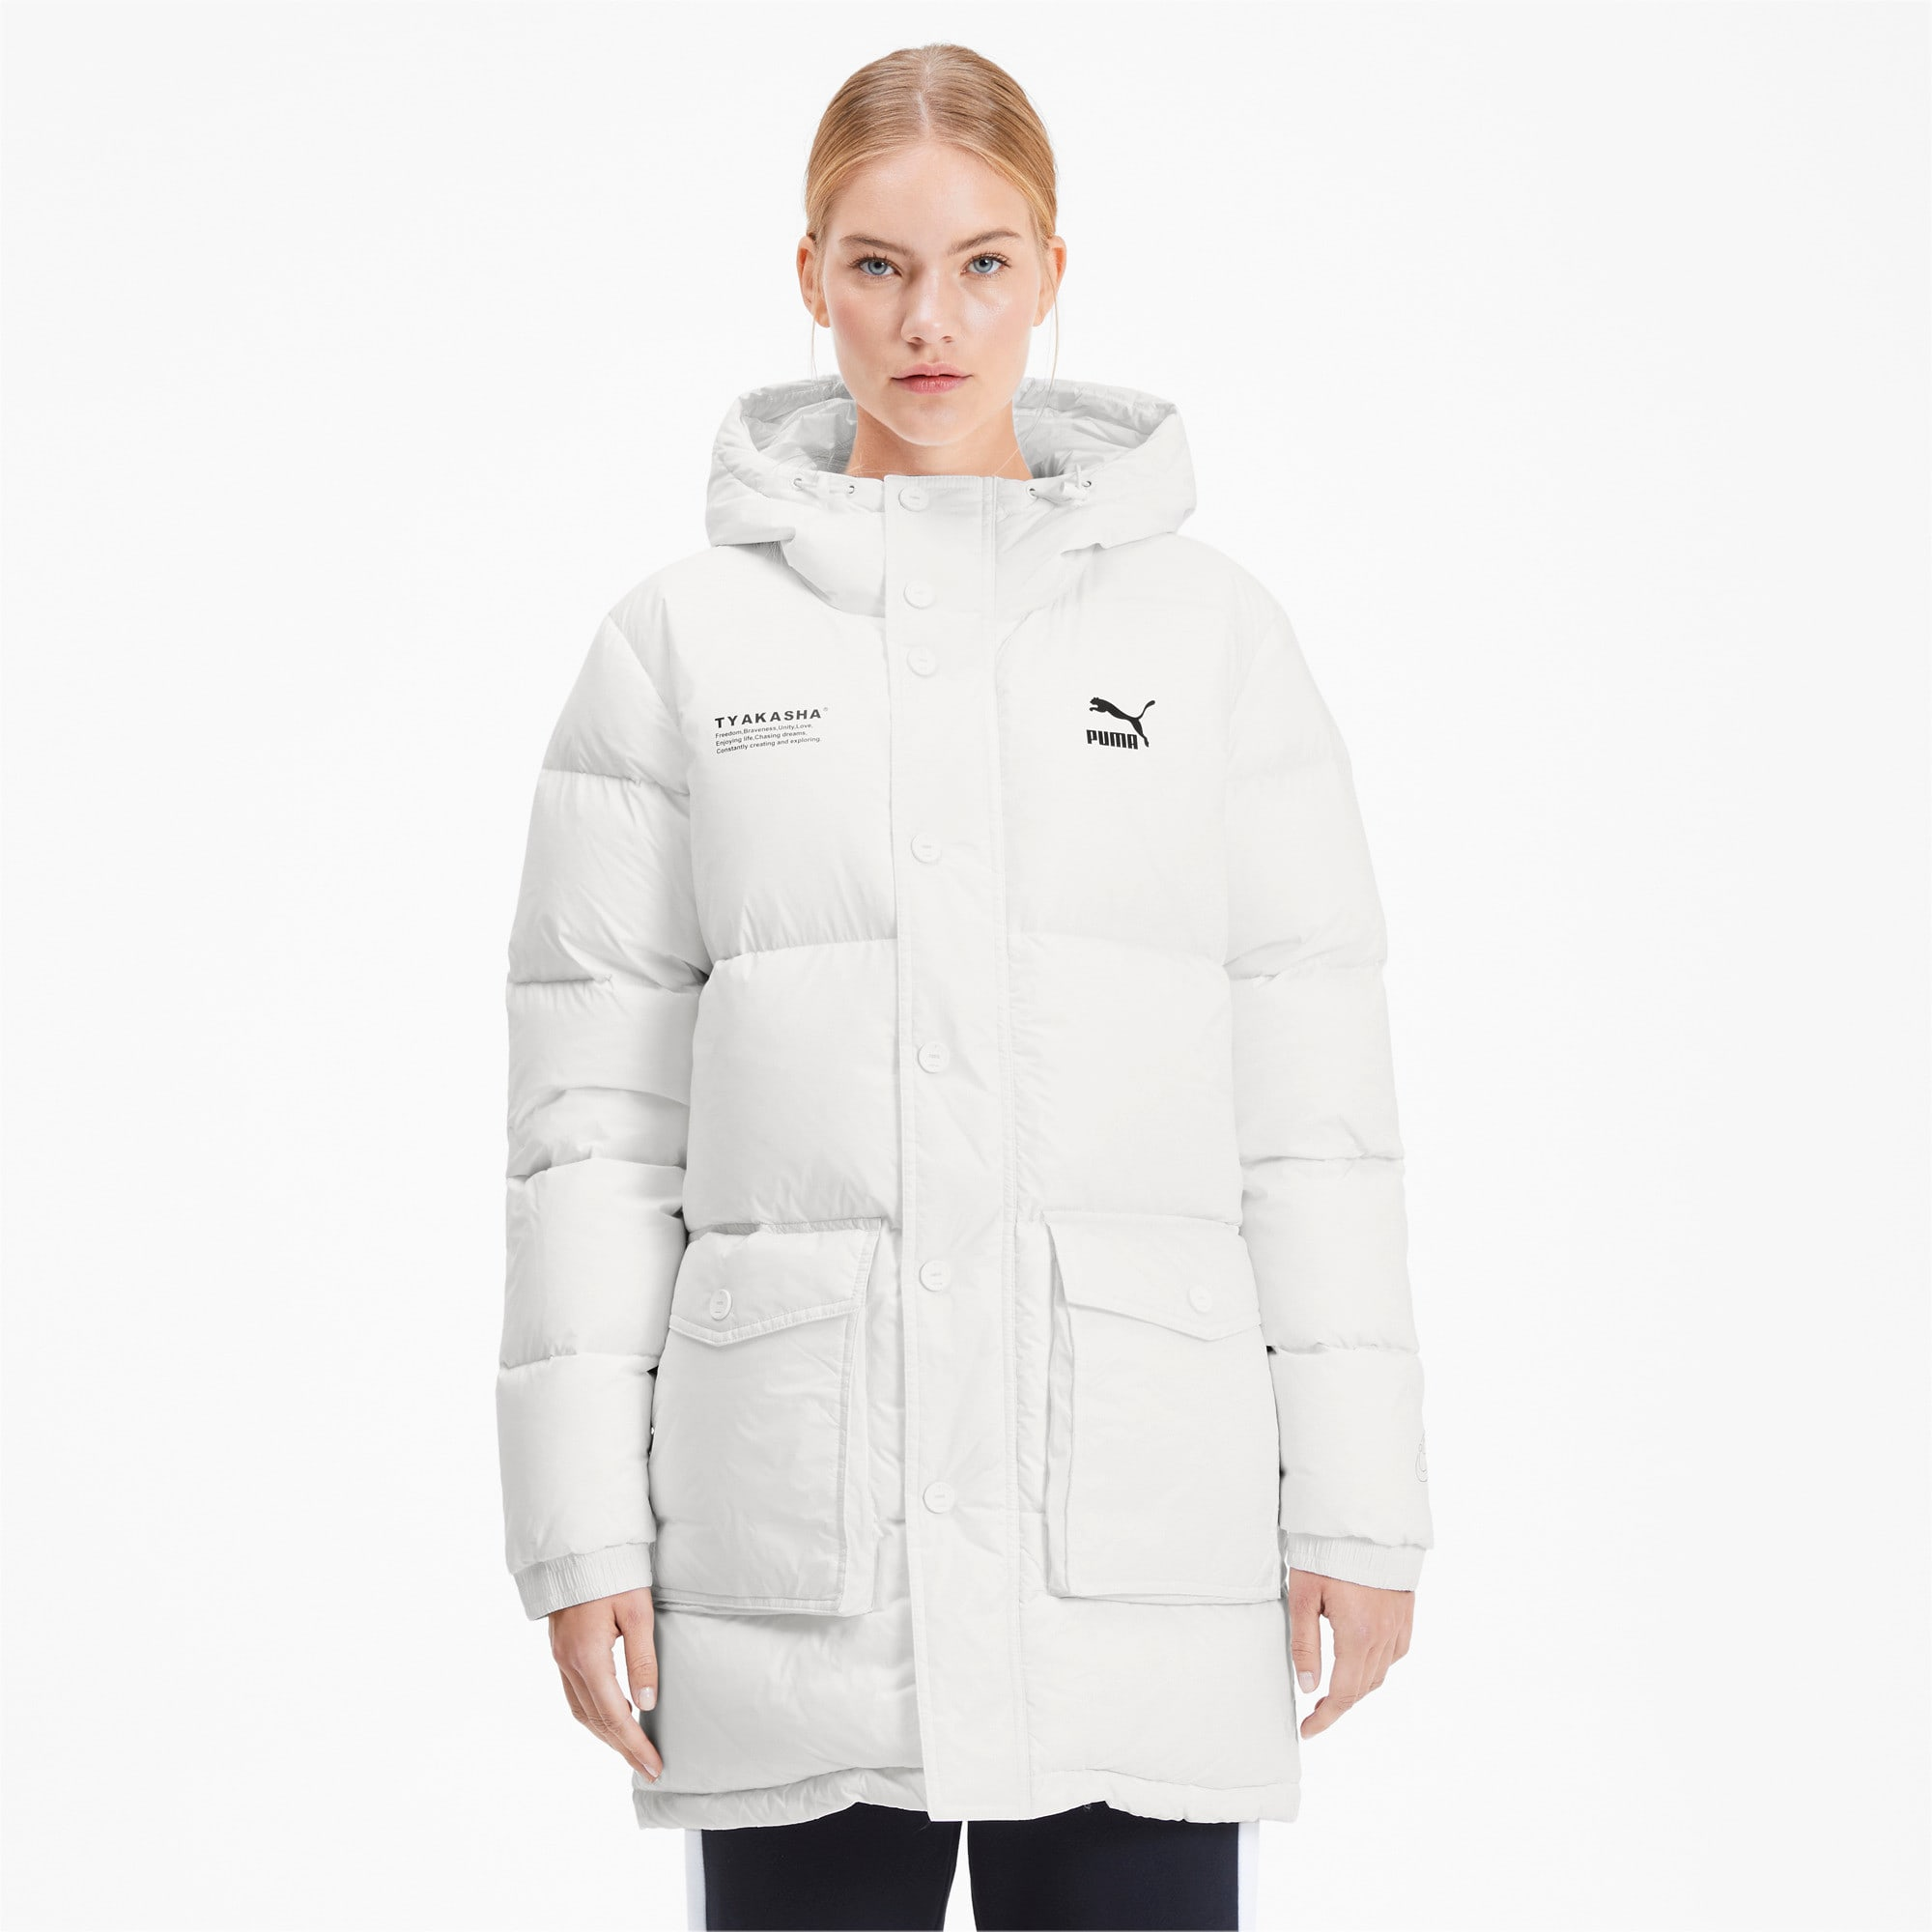 Thumbnail 2 of PUMA x TYAKASHA Woven Down Parka, Puma White, medium